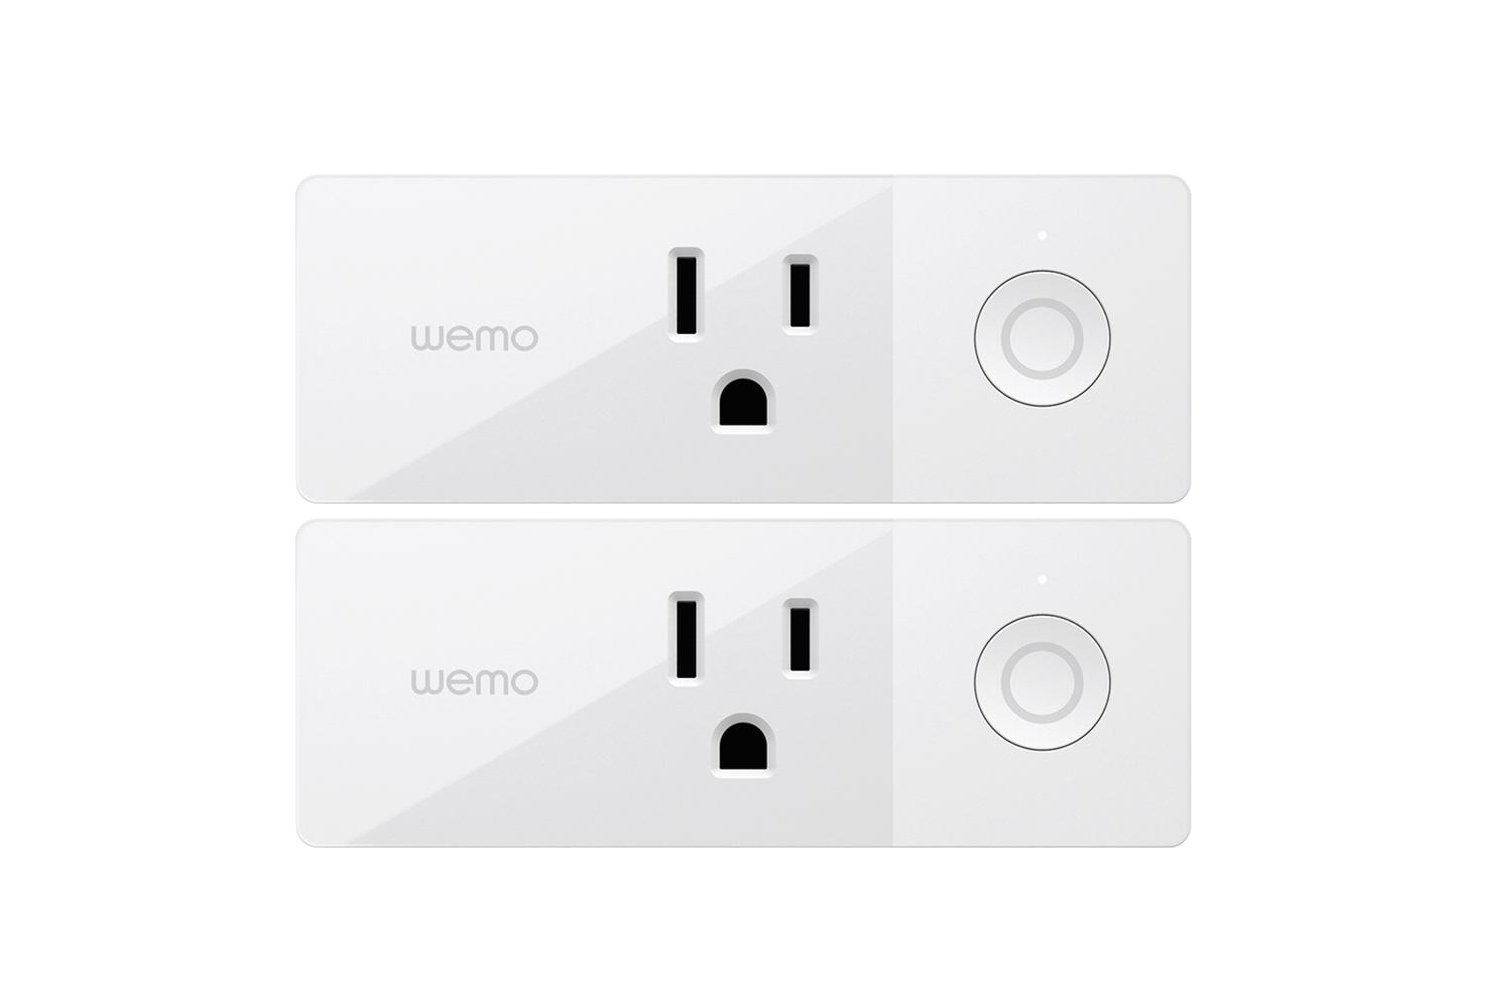 WeMo 4T-T3X2-Y1HT - Google Home Mini Accessories and Kits